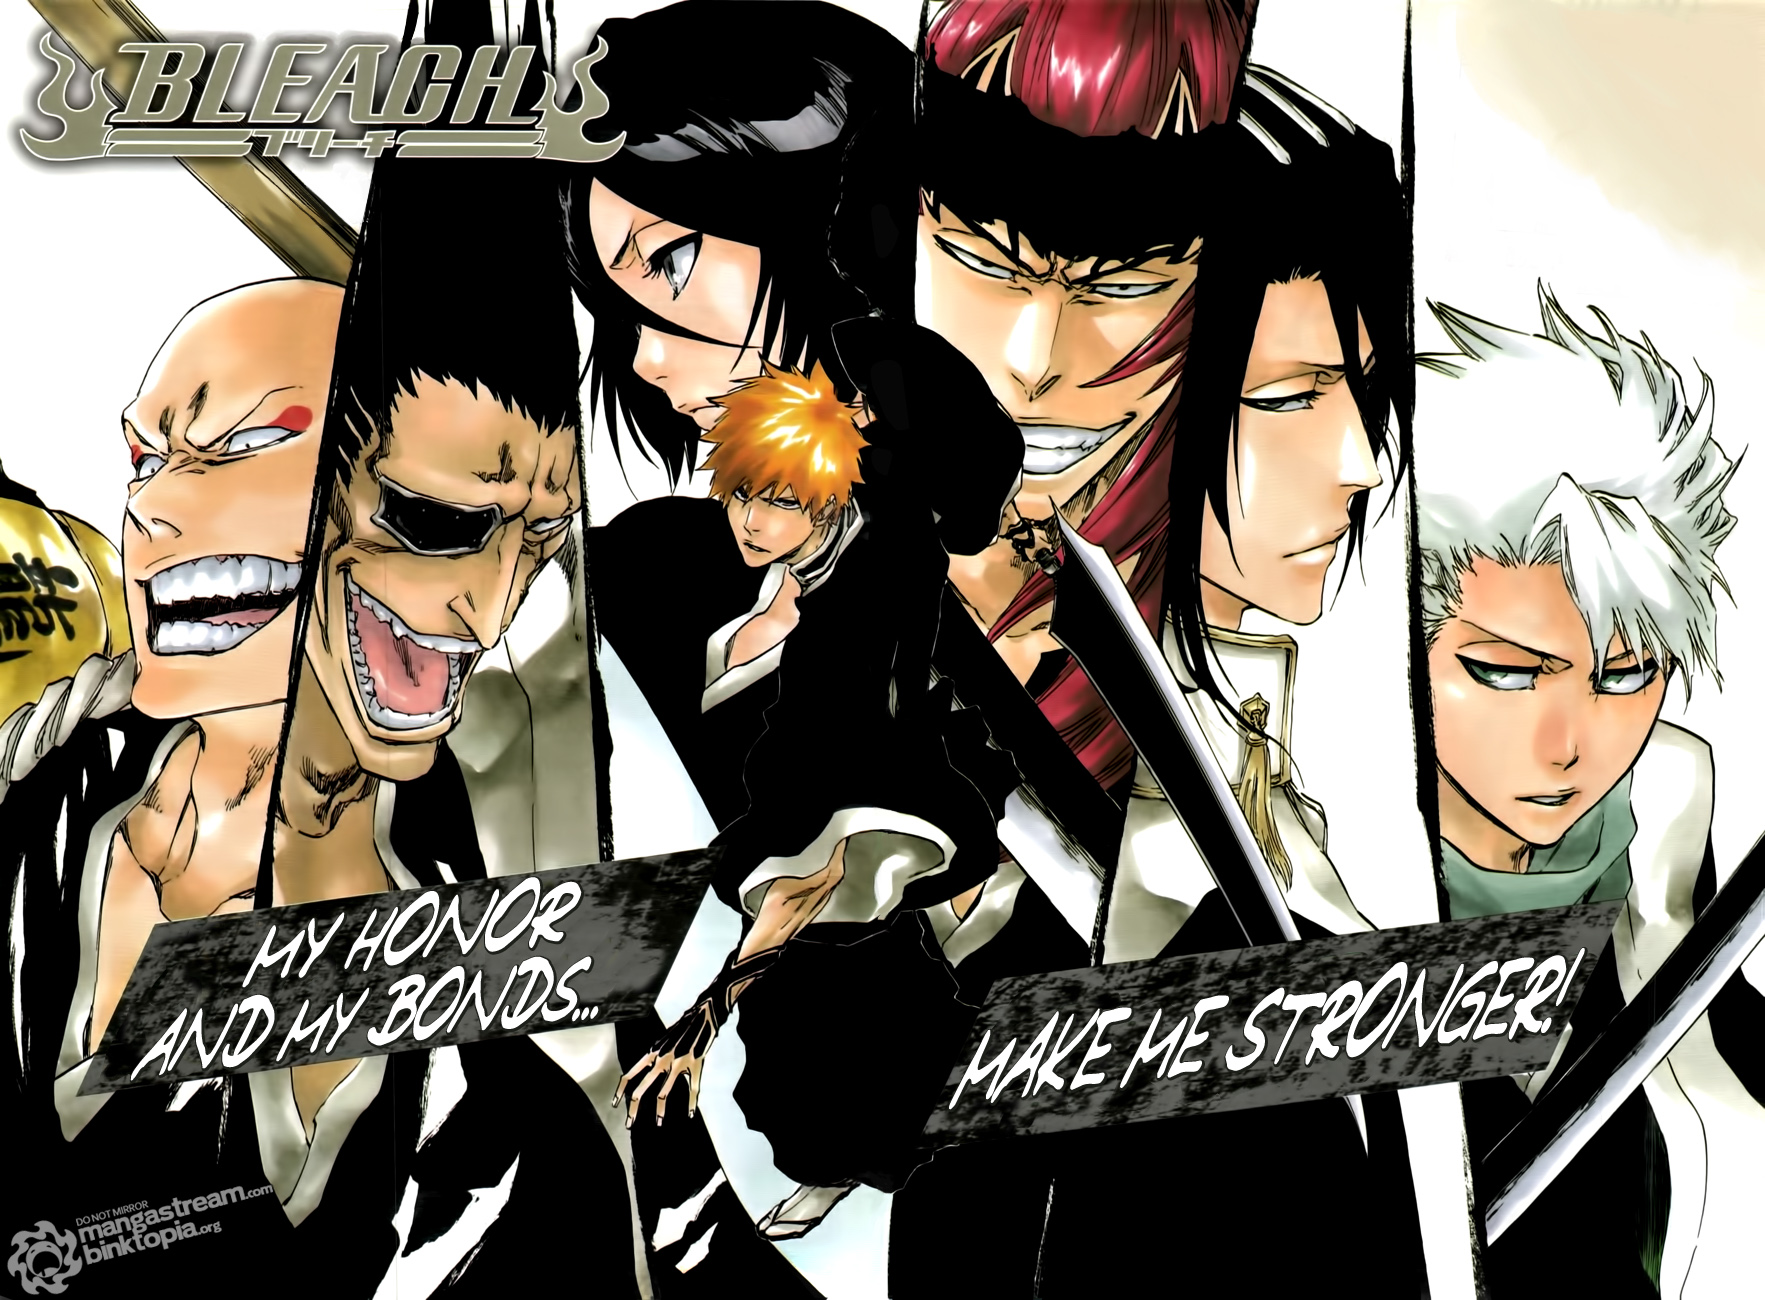 My Honor And Bonds Make Me Stronger Bleach 469